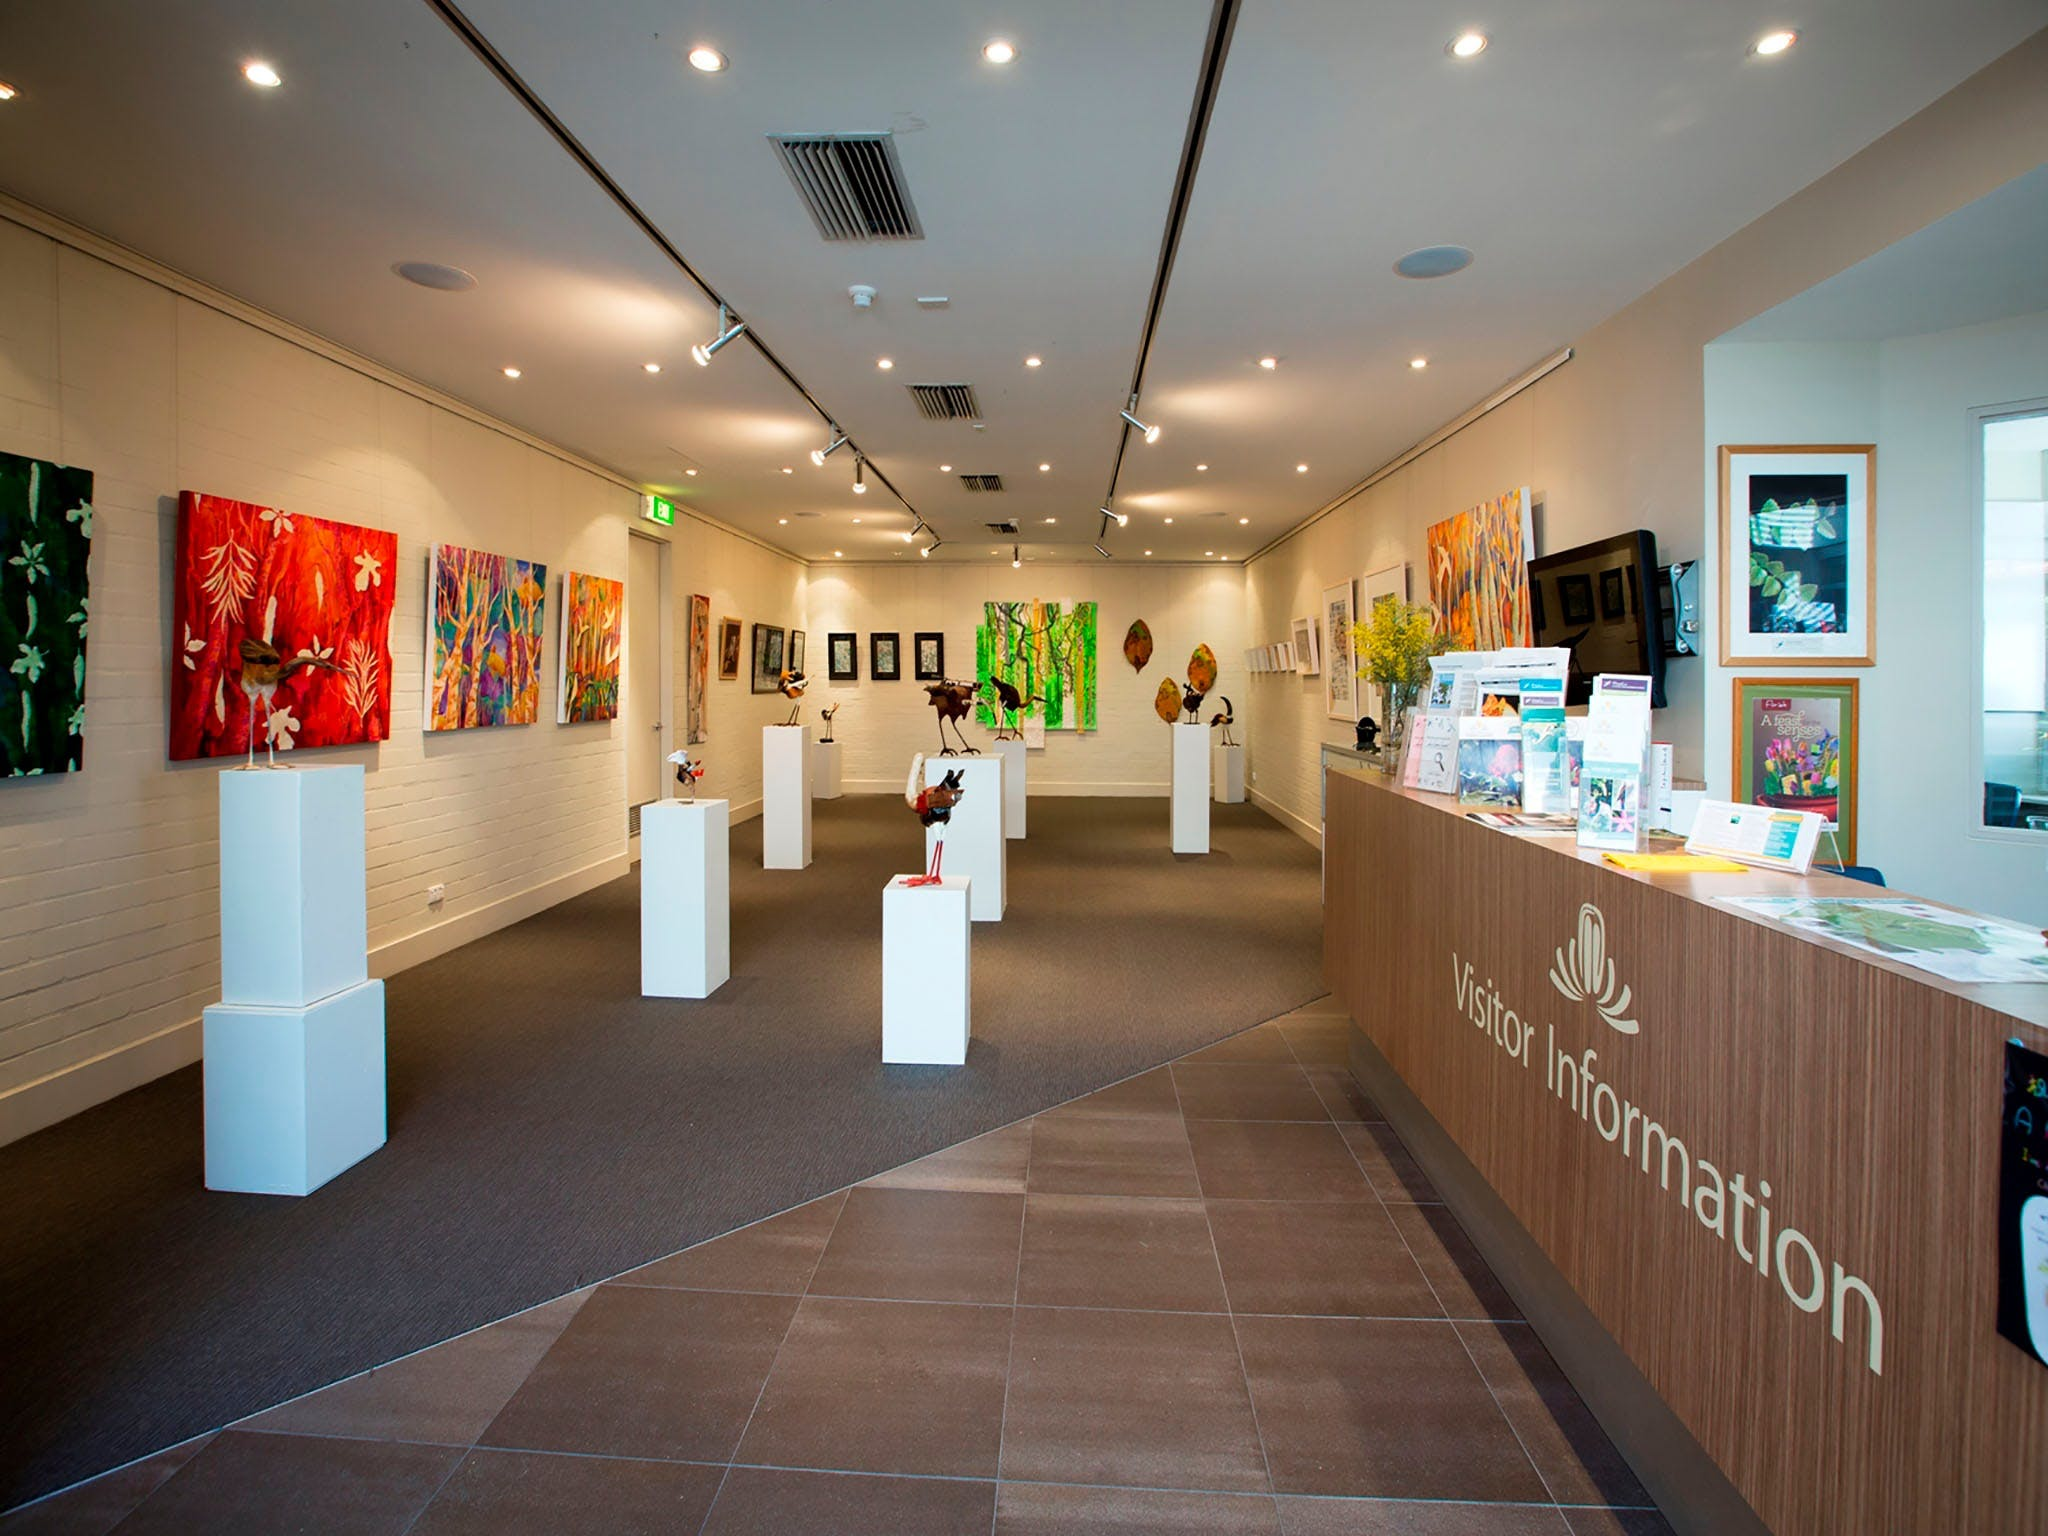 Australian National Botanic Gardens Visitor Centre Gallery - Townsville Tourism